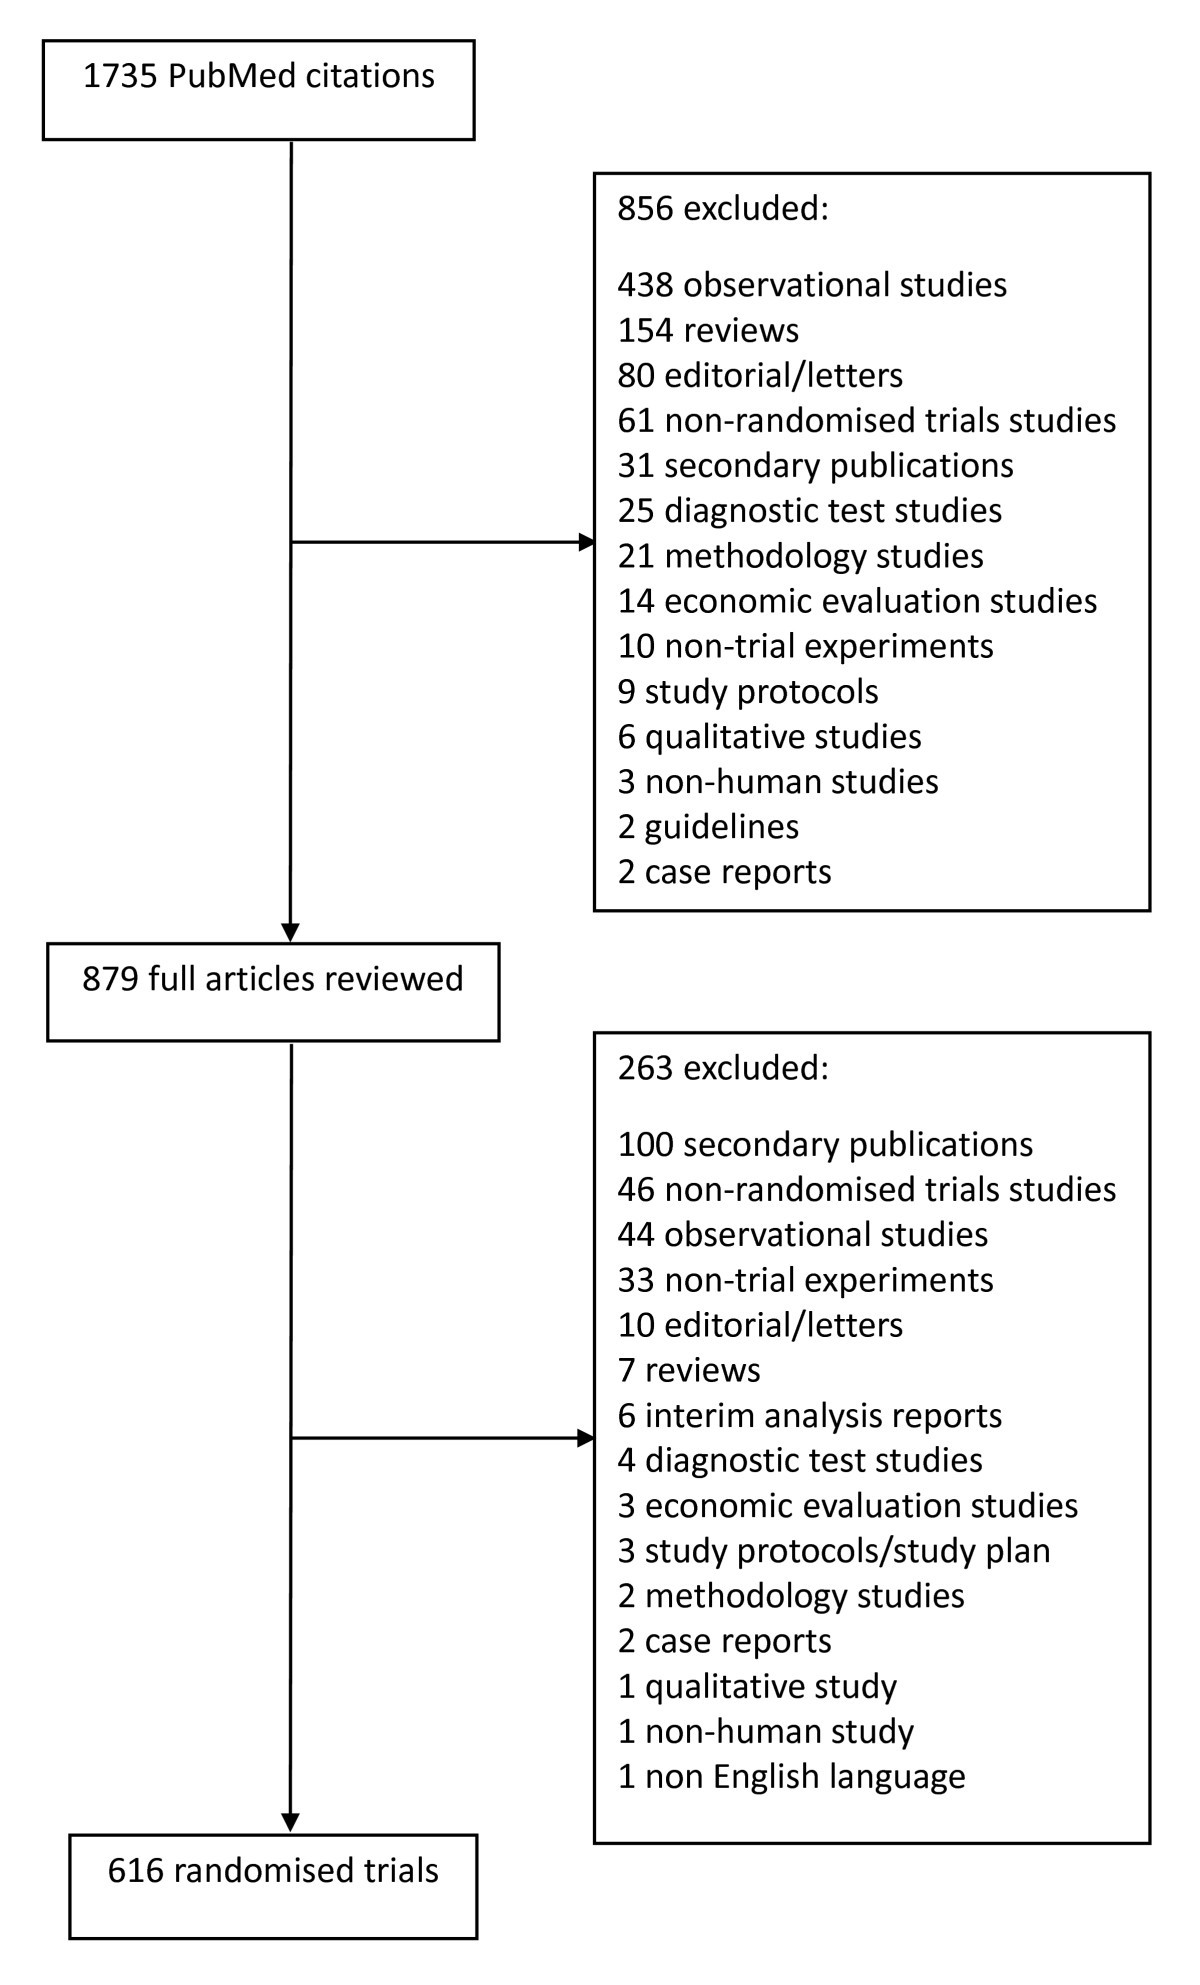 13063_2010_Article_470_Fig1_HTML reporting on covariate adjustment in randomised controlled trials